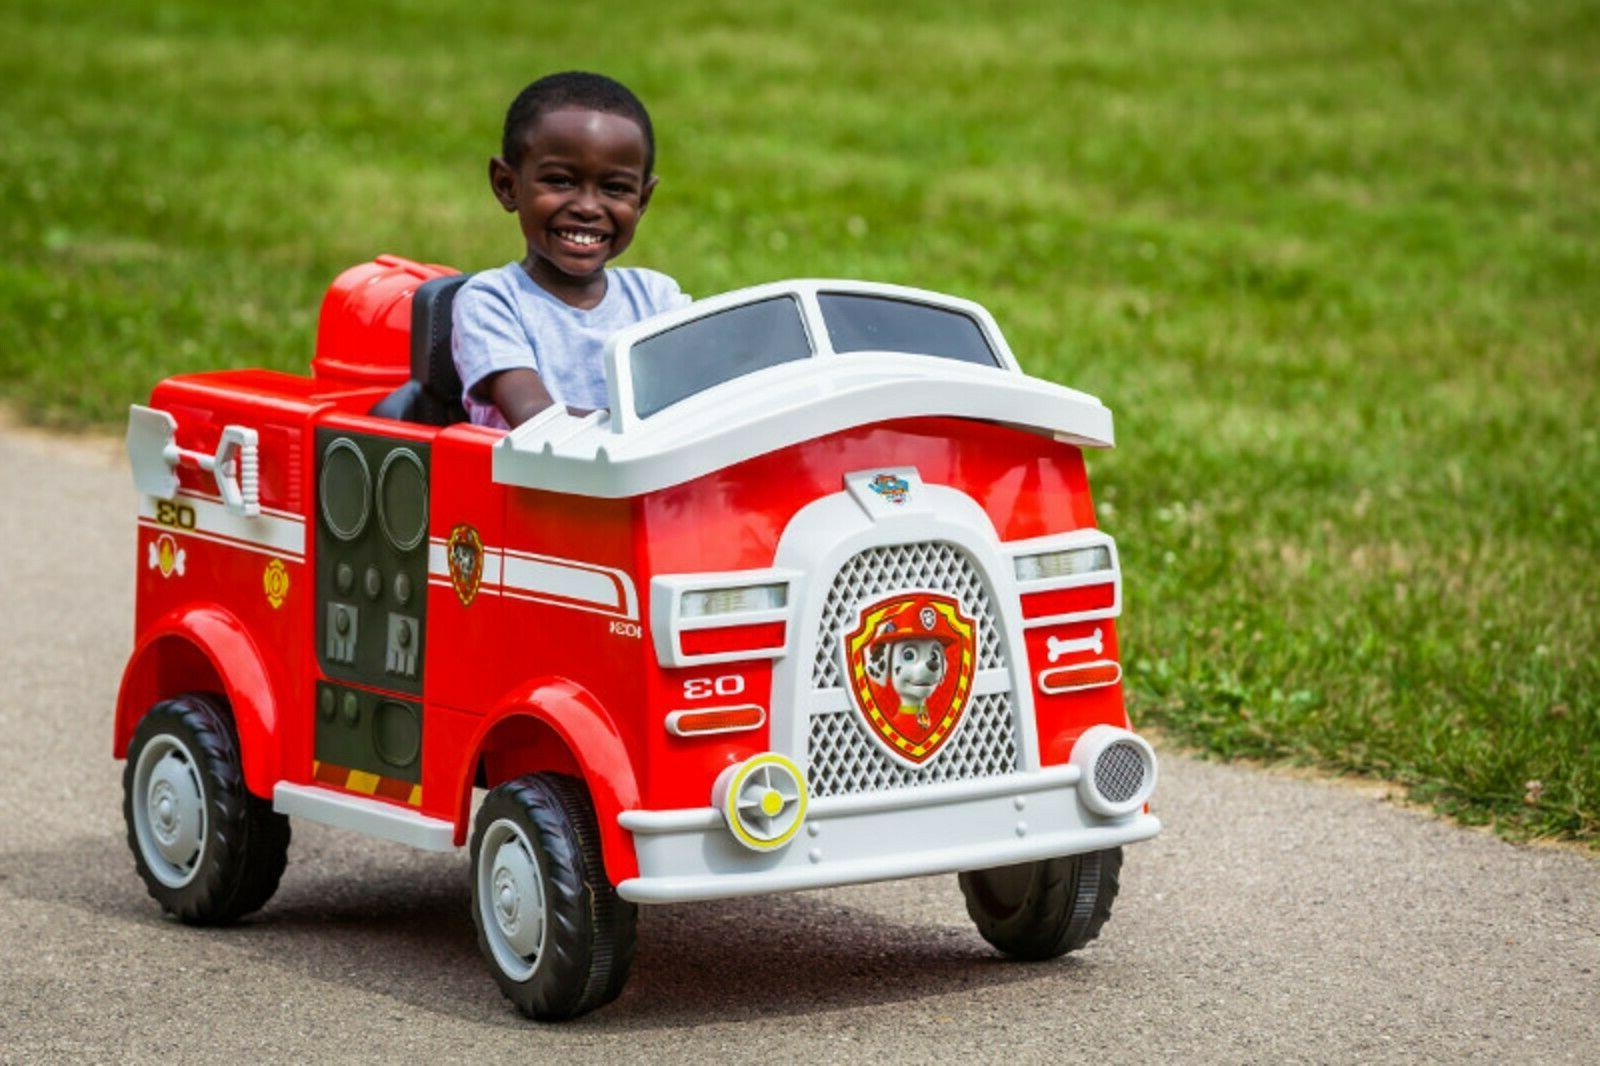 v6 ride on toys rideable car kids